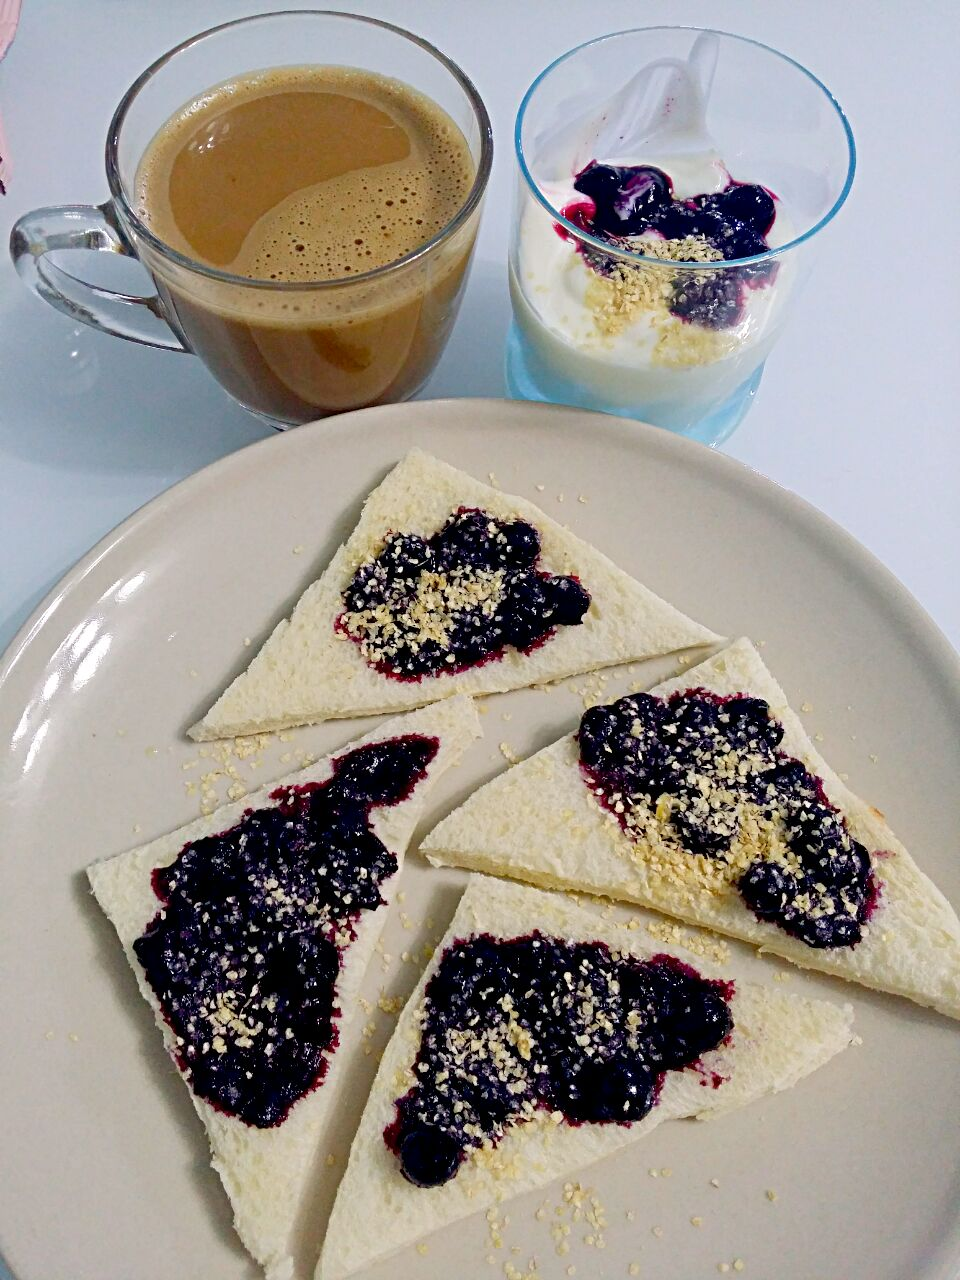 Fresh Blueberries Jam + Bread + Low Fat Yoghurt+ Coffee 💟💗ヽ(^。^)丿